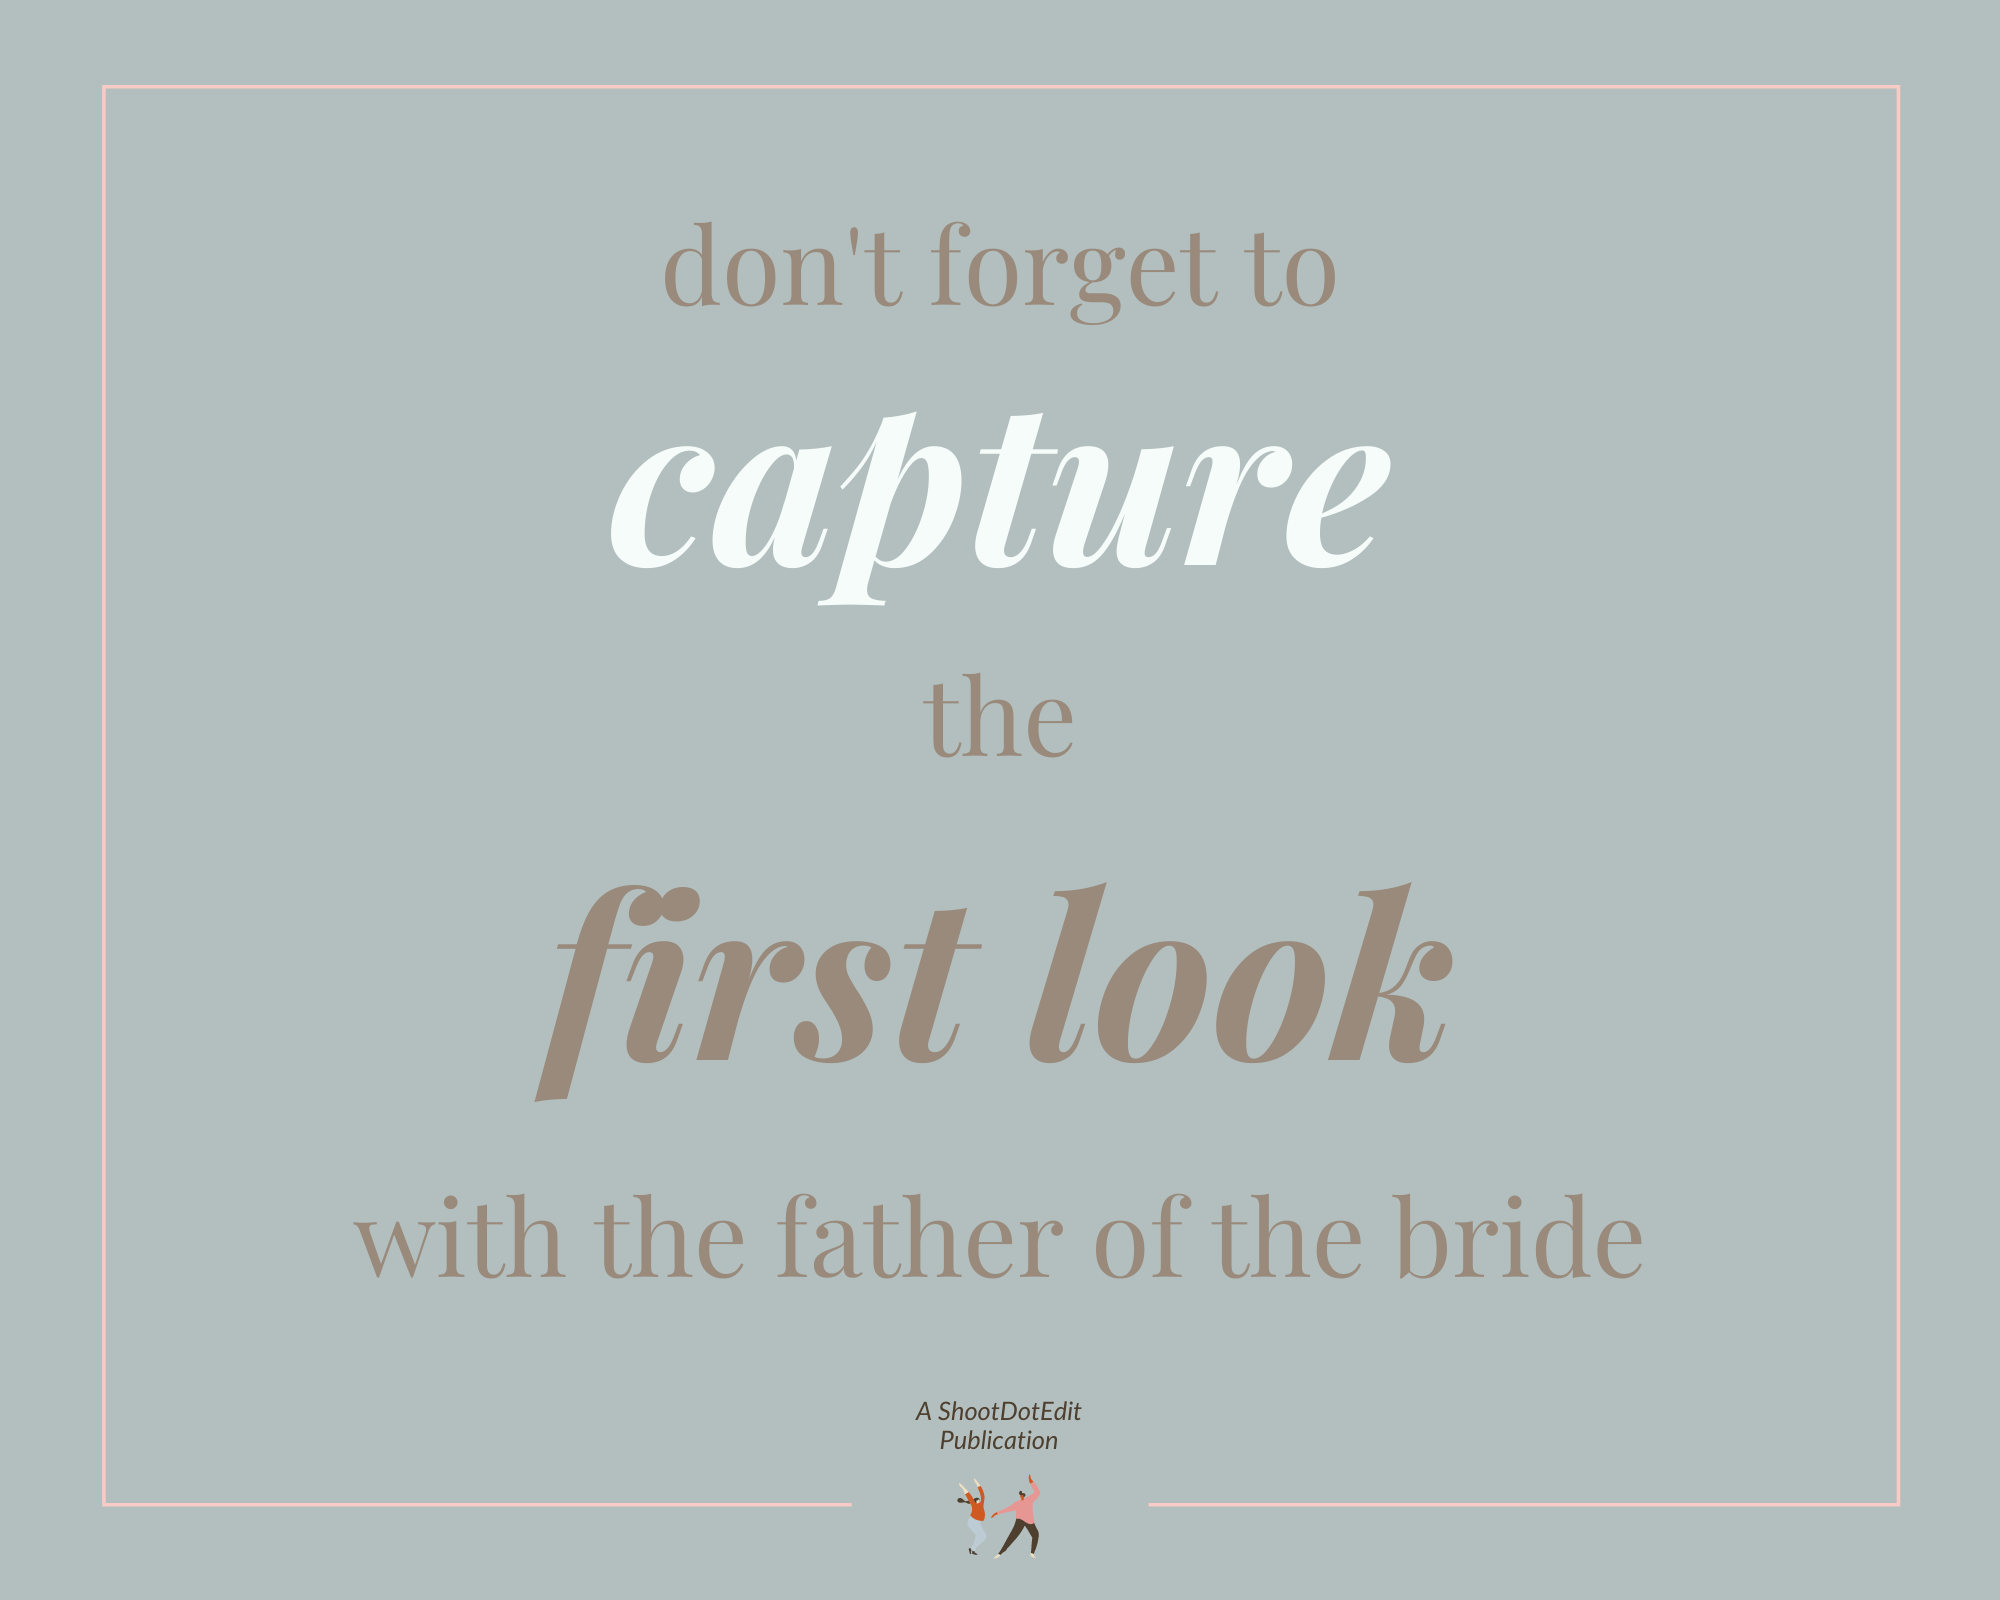 Infographic stating don't forget to capture the first look with the father of the bride